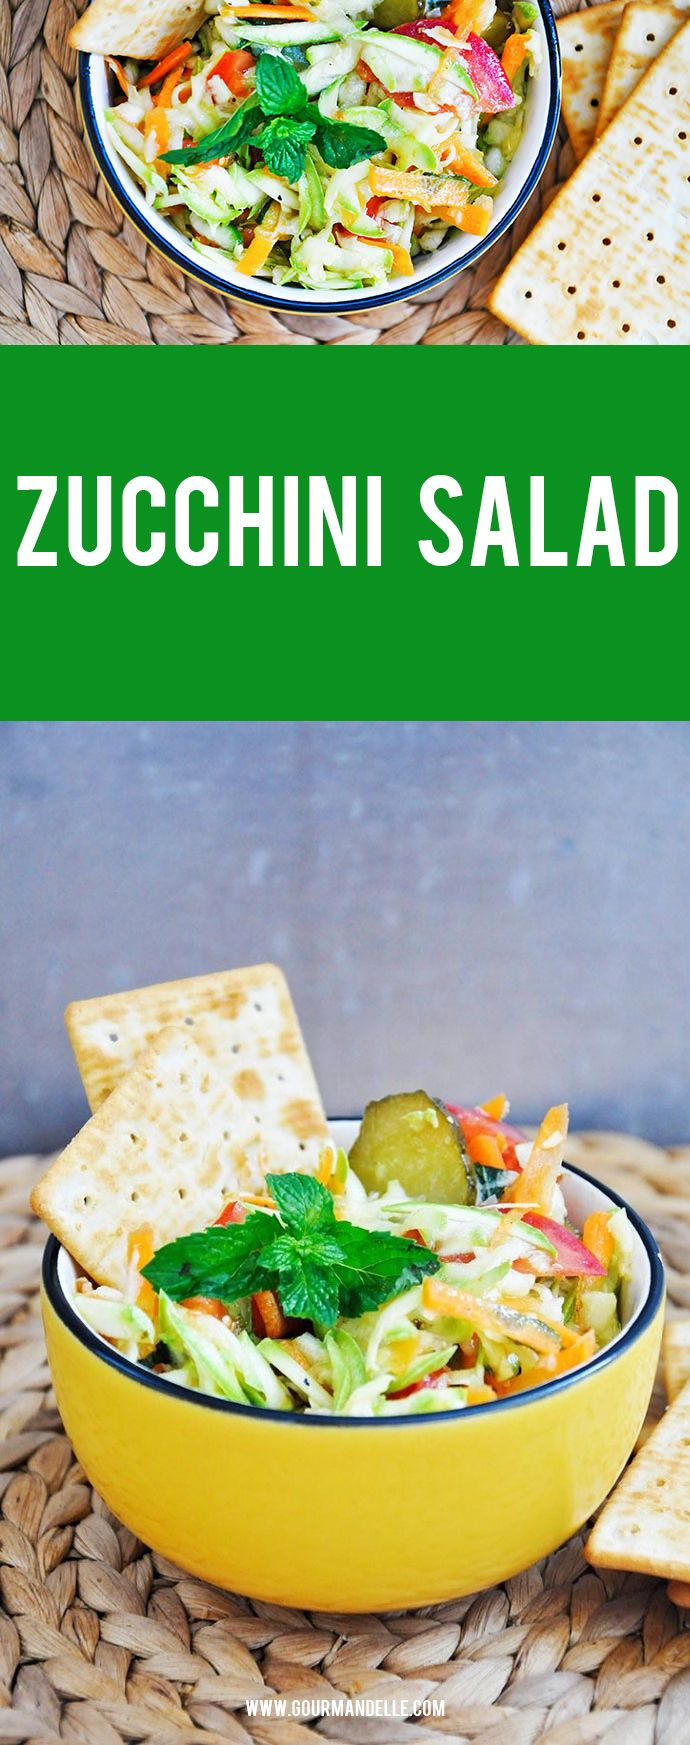 Zucchini Salad - This zucchini salad with mint and pickles is inspired by one of Jamie Oliver's 15-minute healthy recipes. This quick and savory salad is raw, vegan and macrobiotic too!